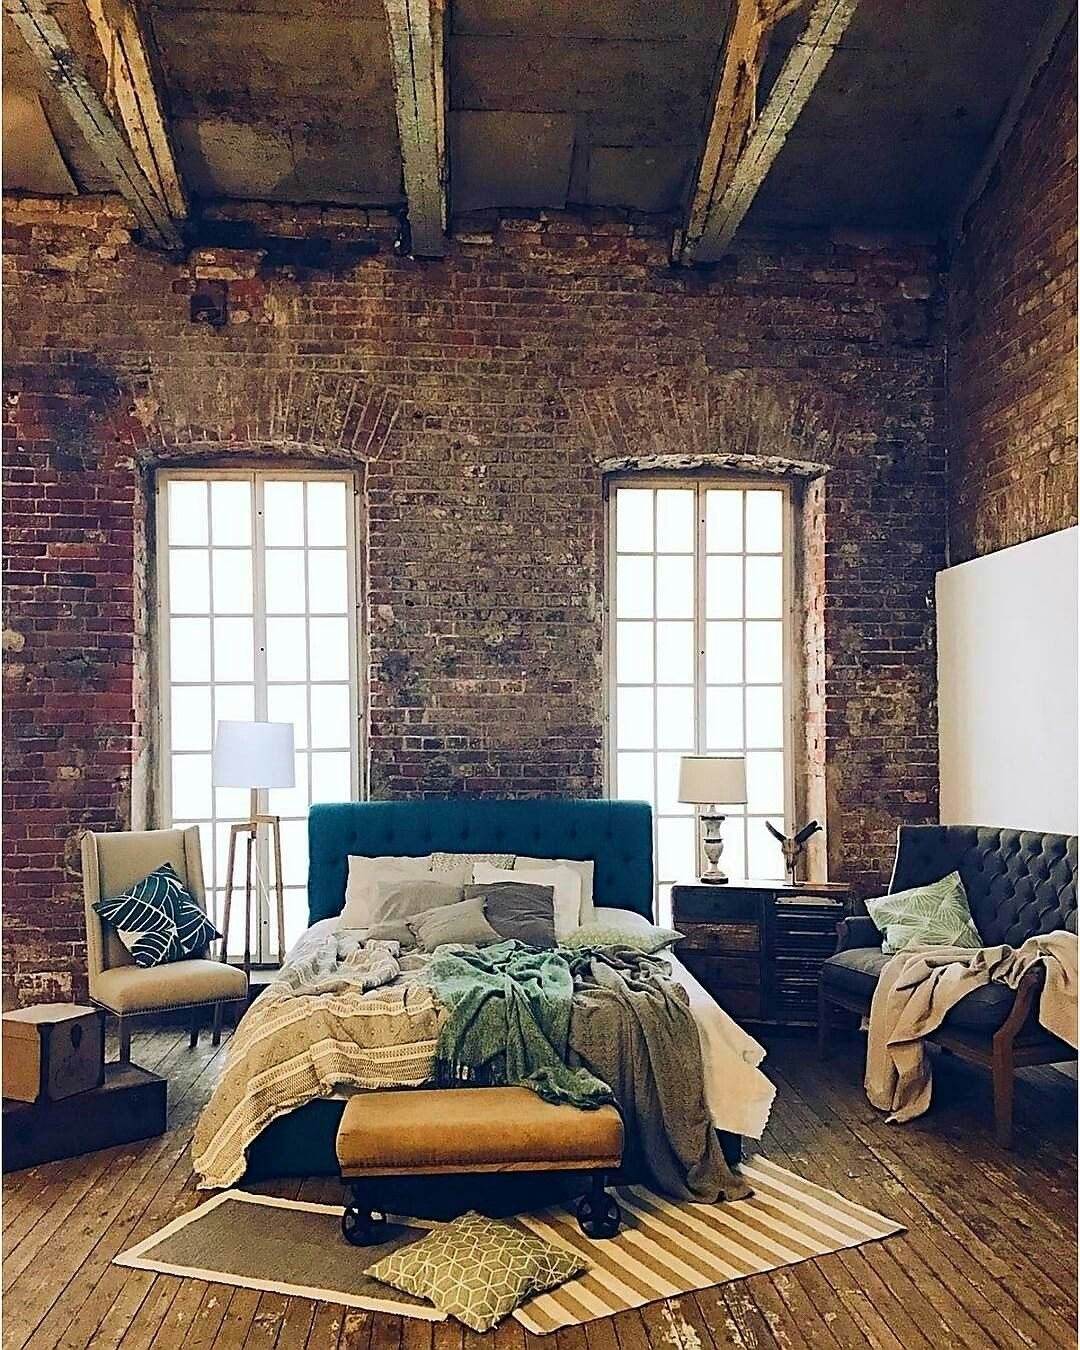 Loft bedroom design ideas  Feel Inspired With These New York Industrial Lofts  Vintage decor